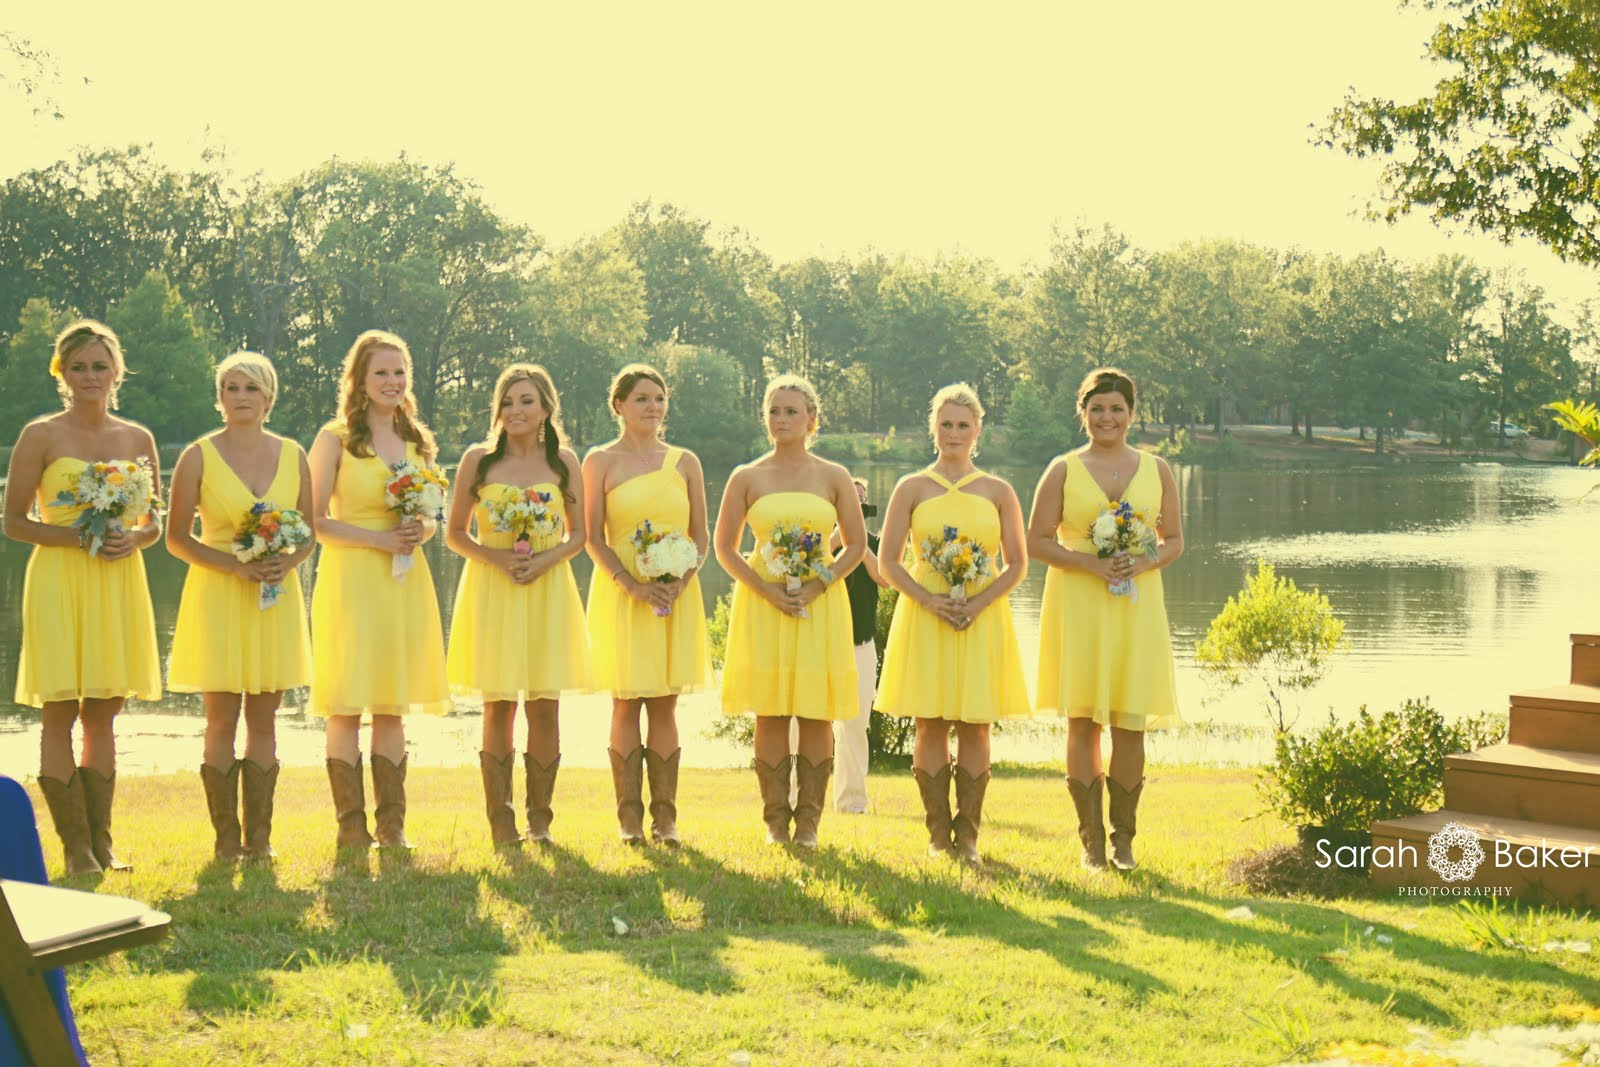 SPOTLIGHT ON: Bridesmaid Dresses in Pantone Buttercup